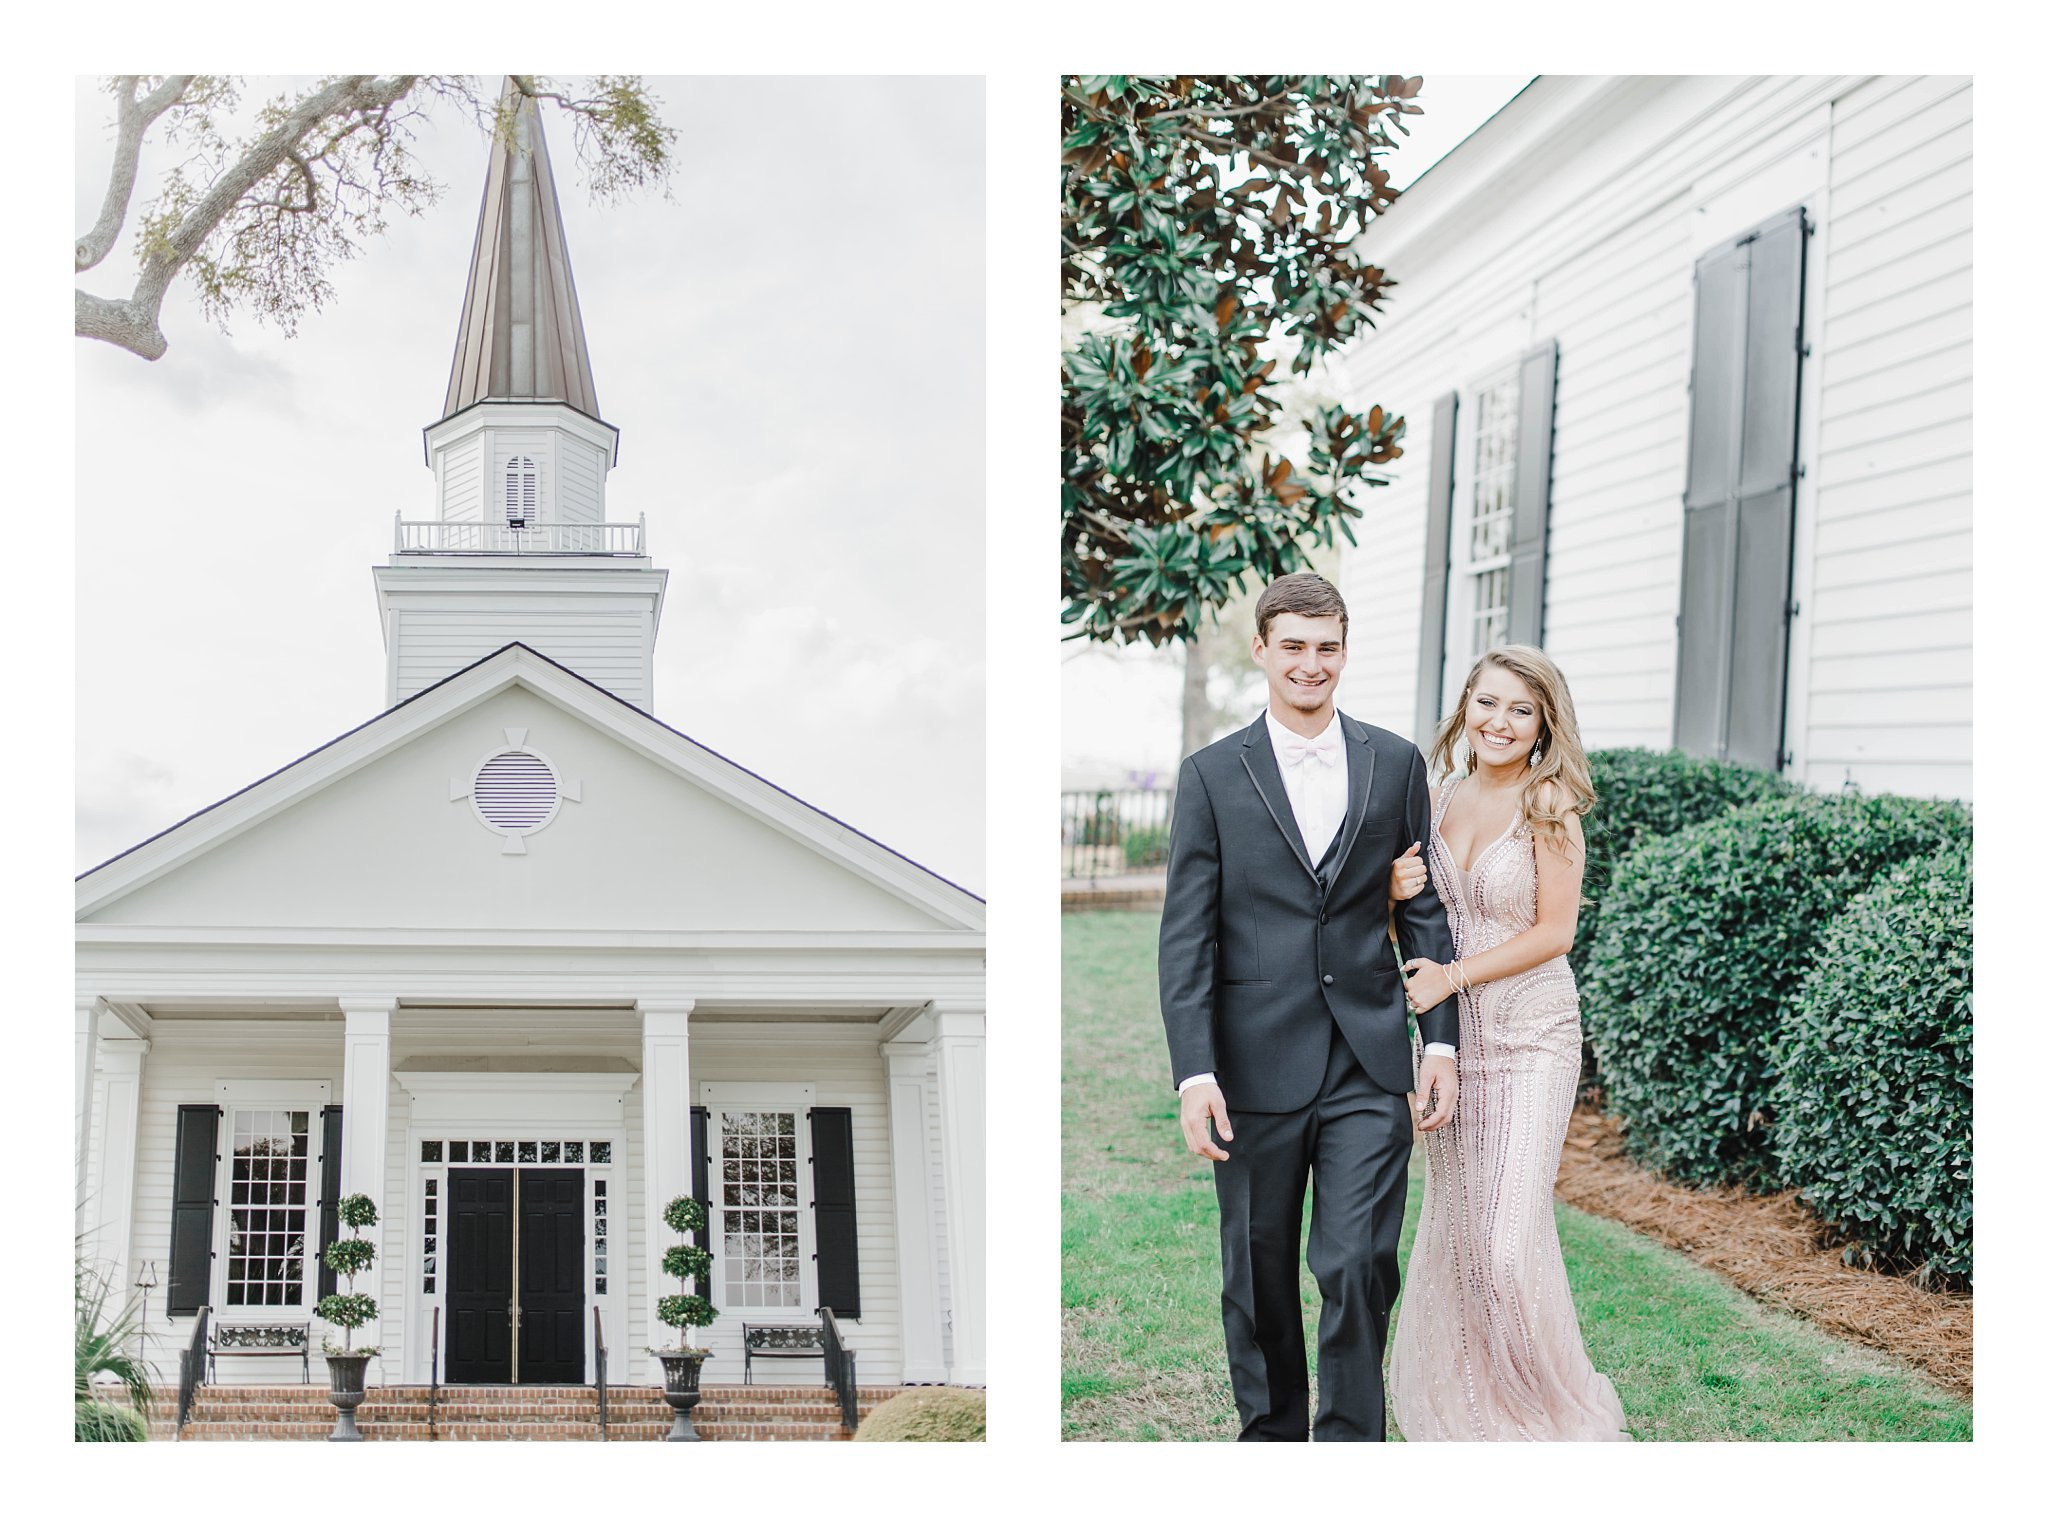 spring-belin-methodist-beaded-gown-murrells-inlet-sc-prom-photos-_0005.jpg